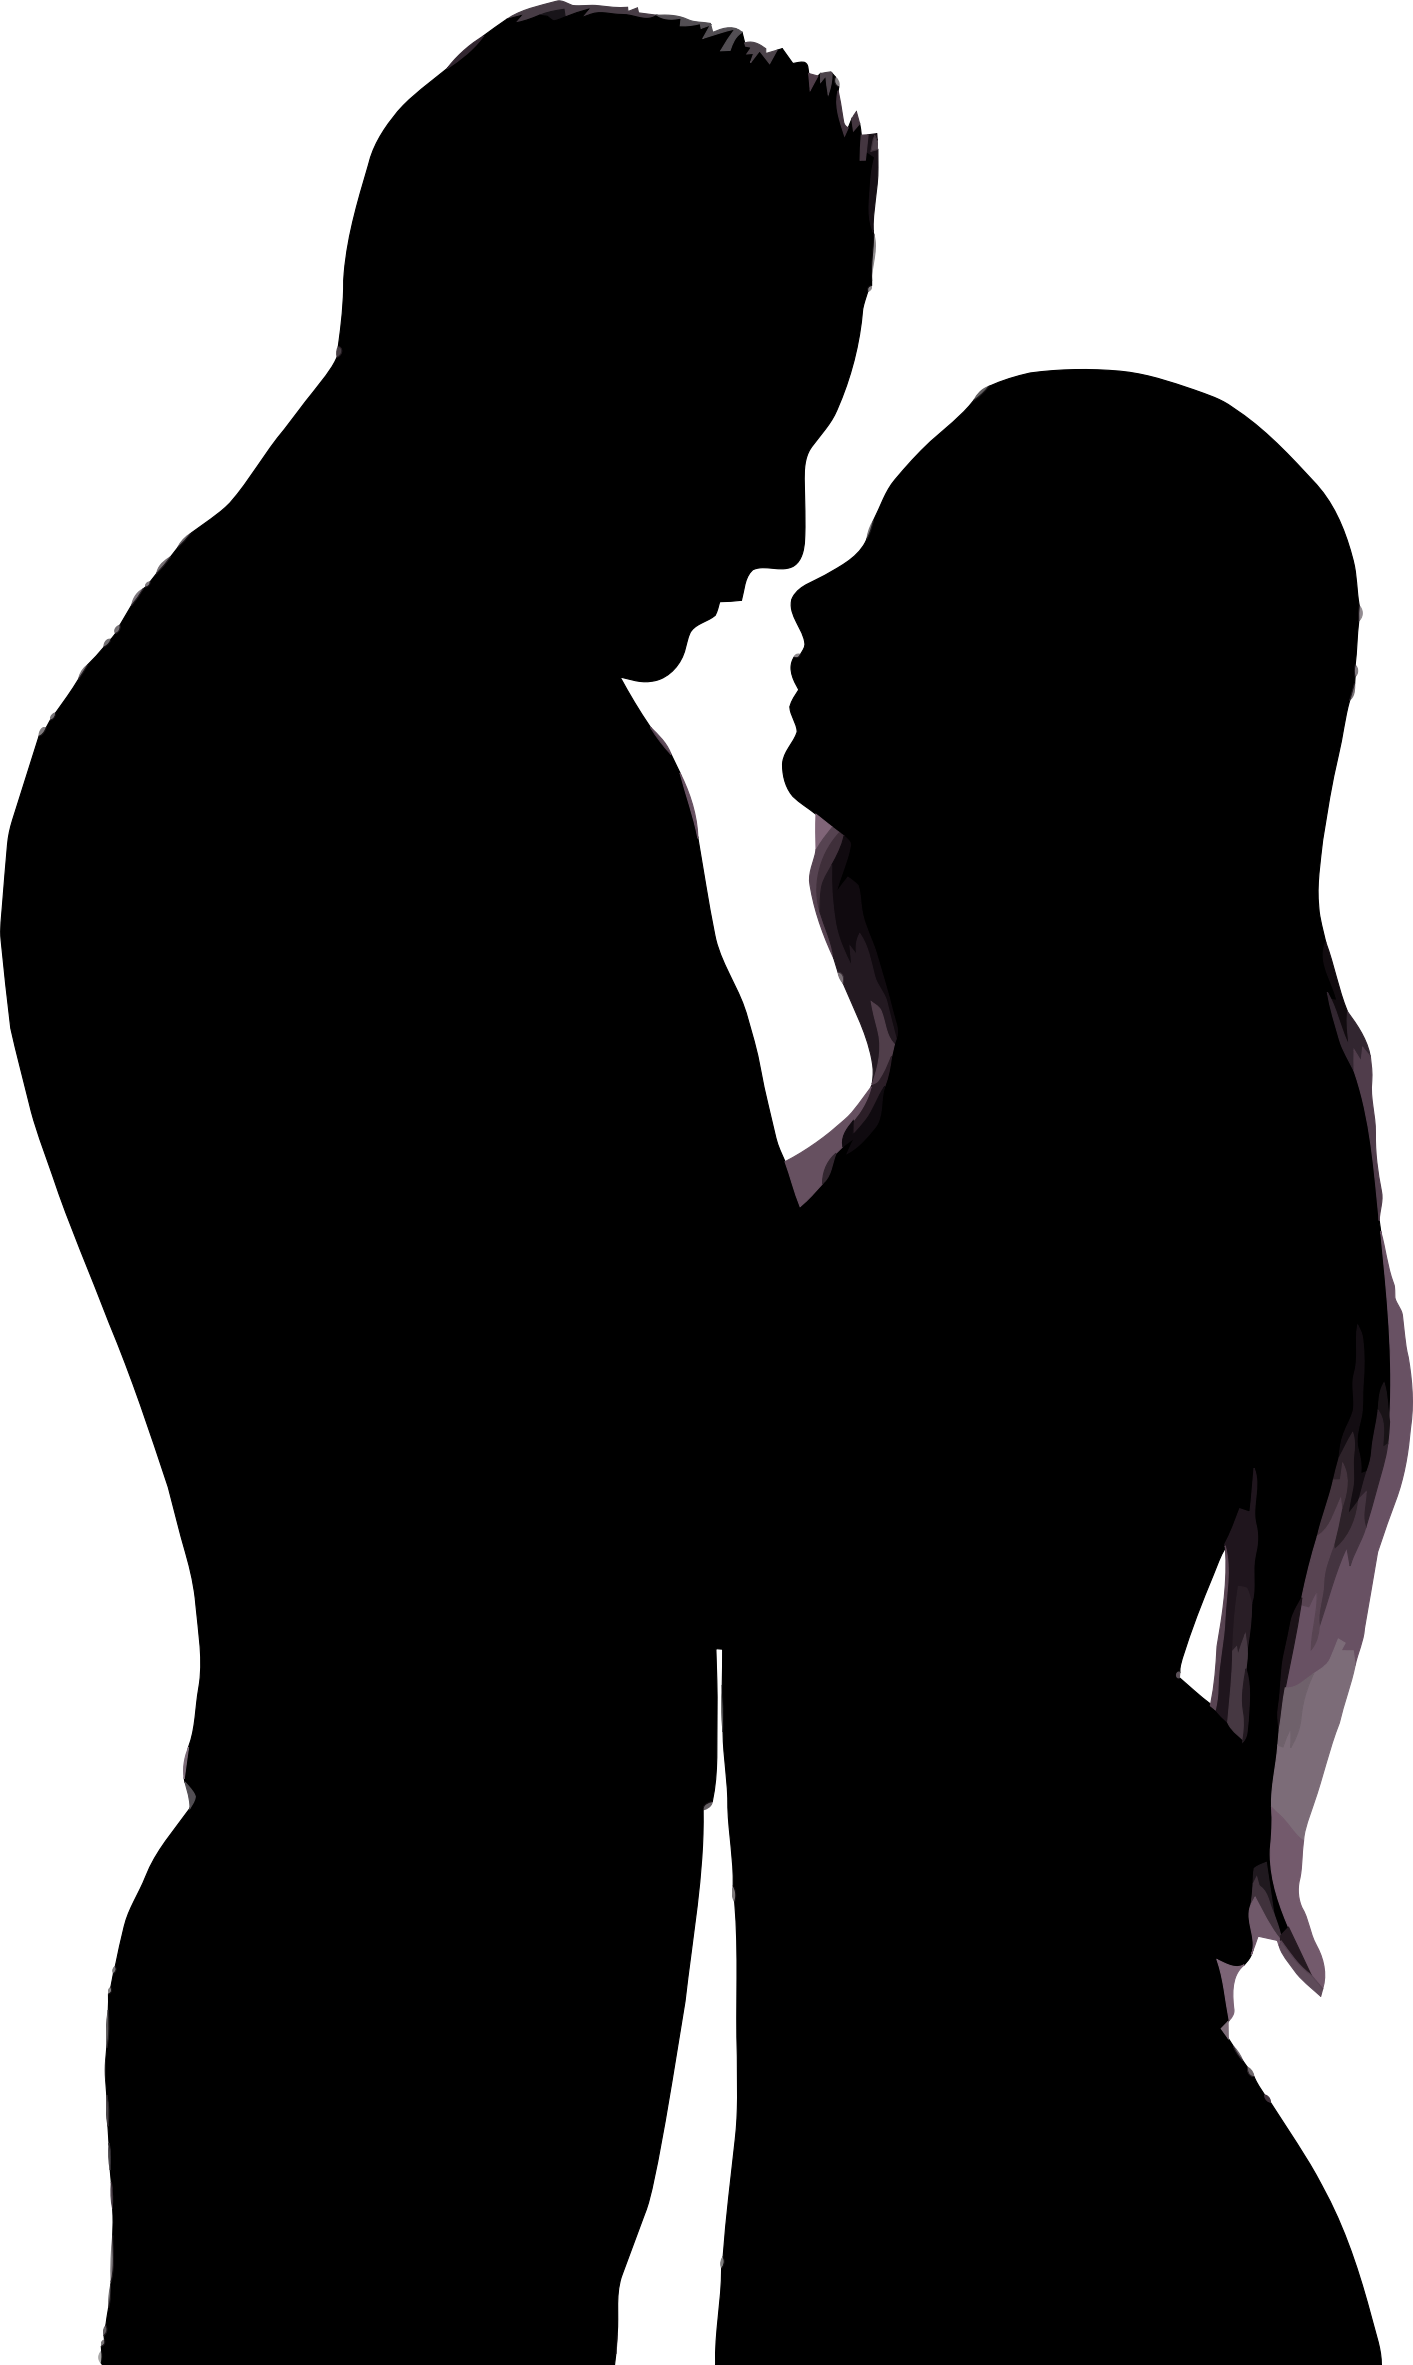 Embracing Couple Silhouette by GDJ